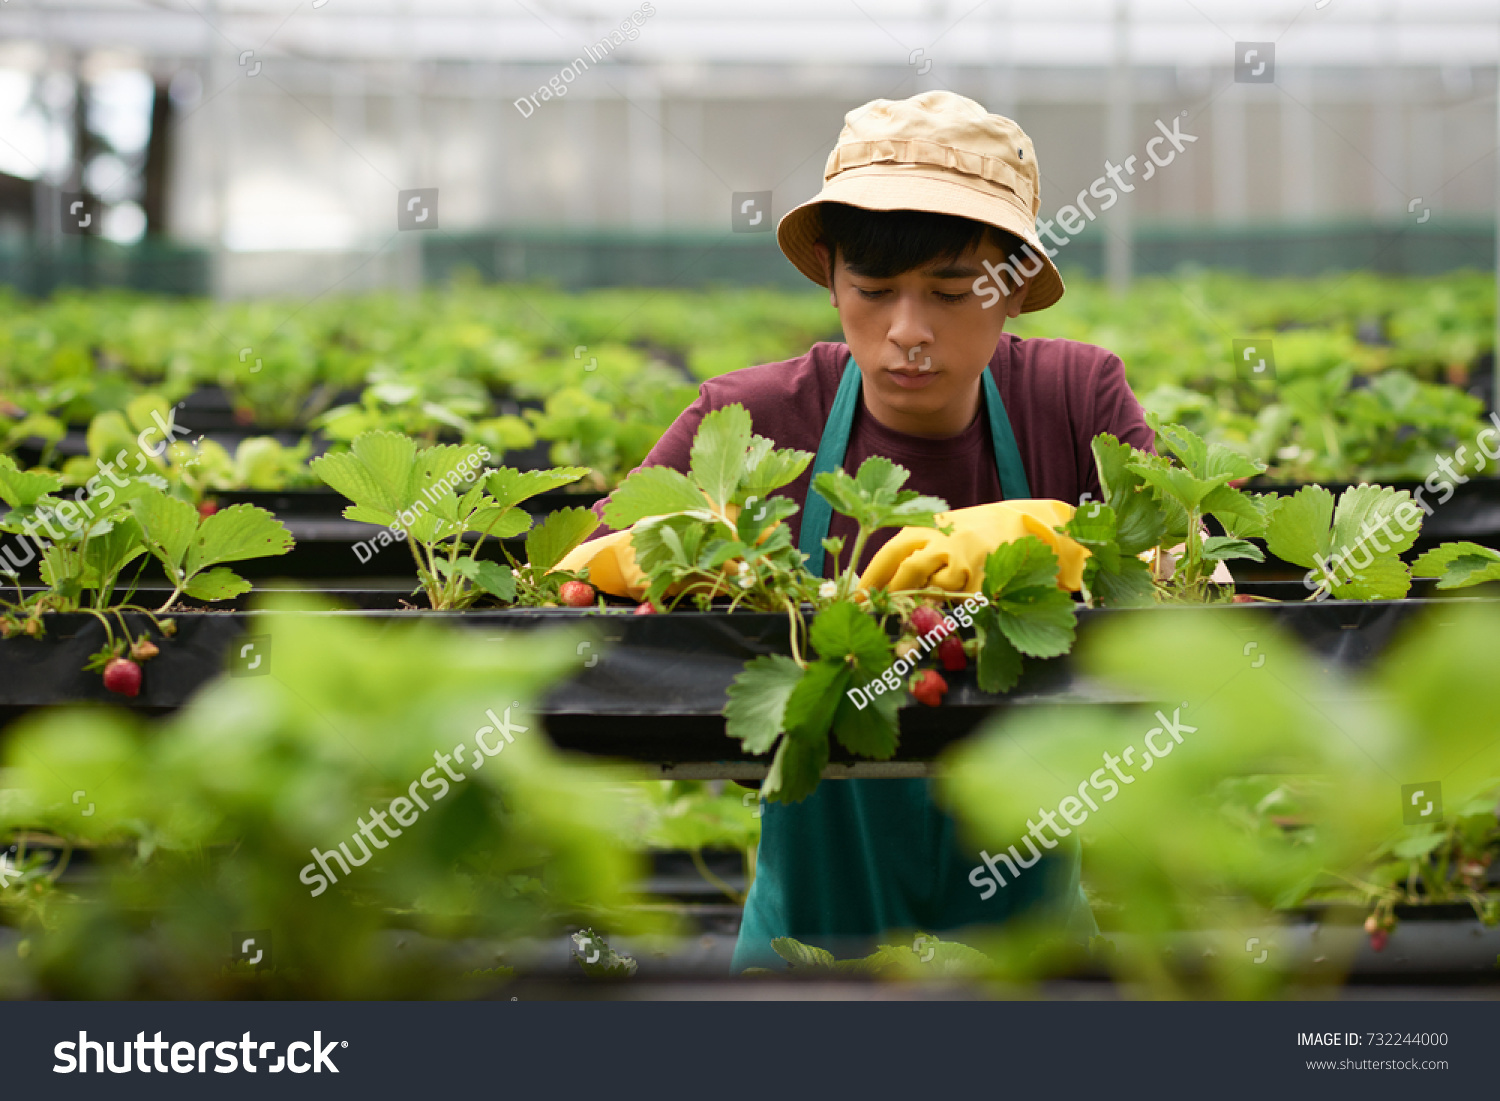 Portrait of handsome young greenhouse worker wearing bucket hat and apron  picking ripe strawberries 0fb4cef3911c